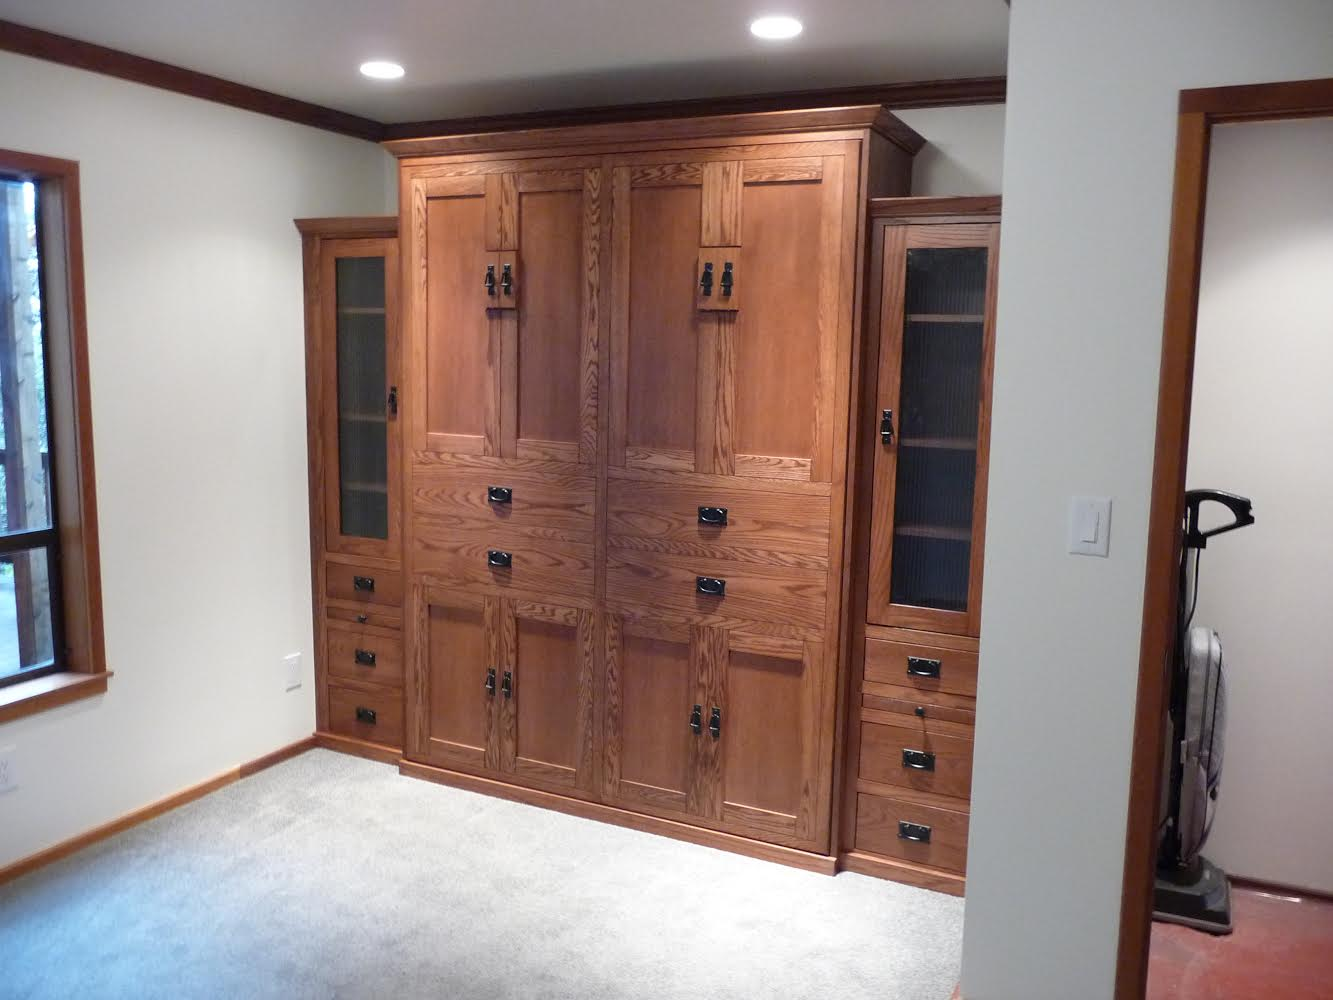 Queen size American Craftsman style Murphy Bed in Oak wood with Mission finish